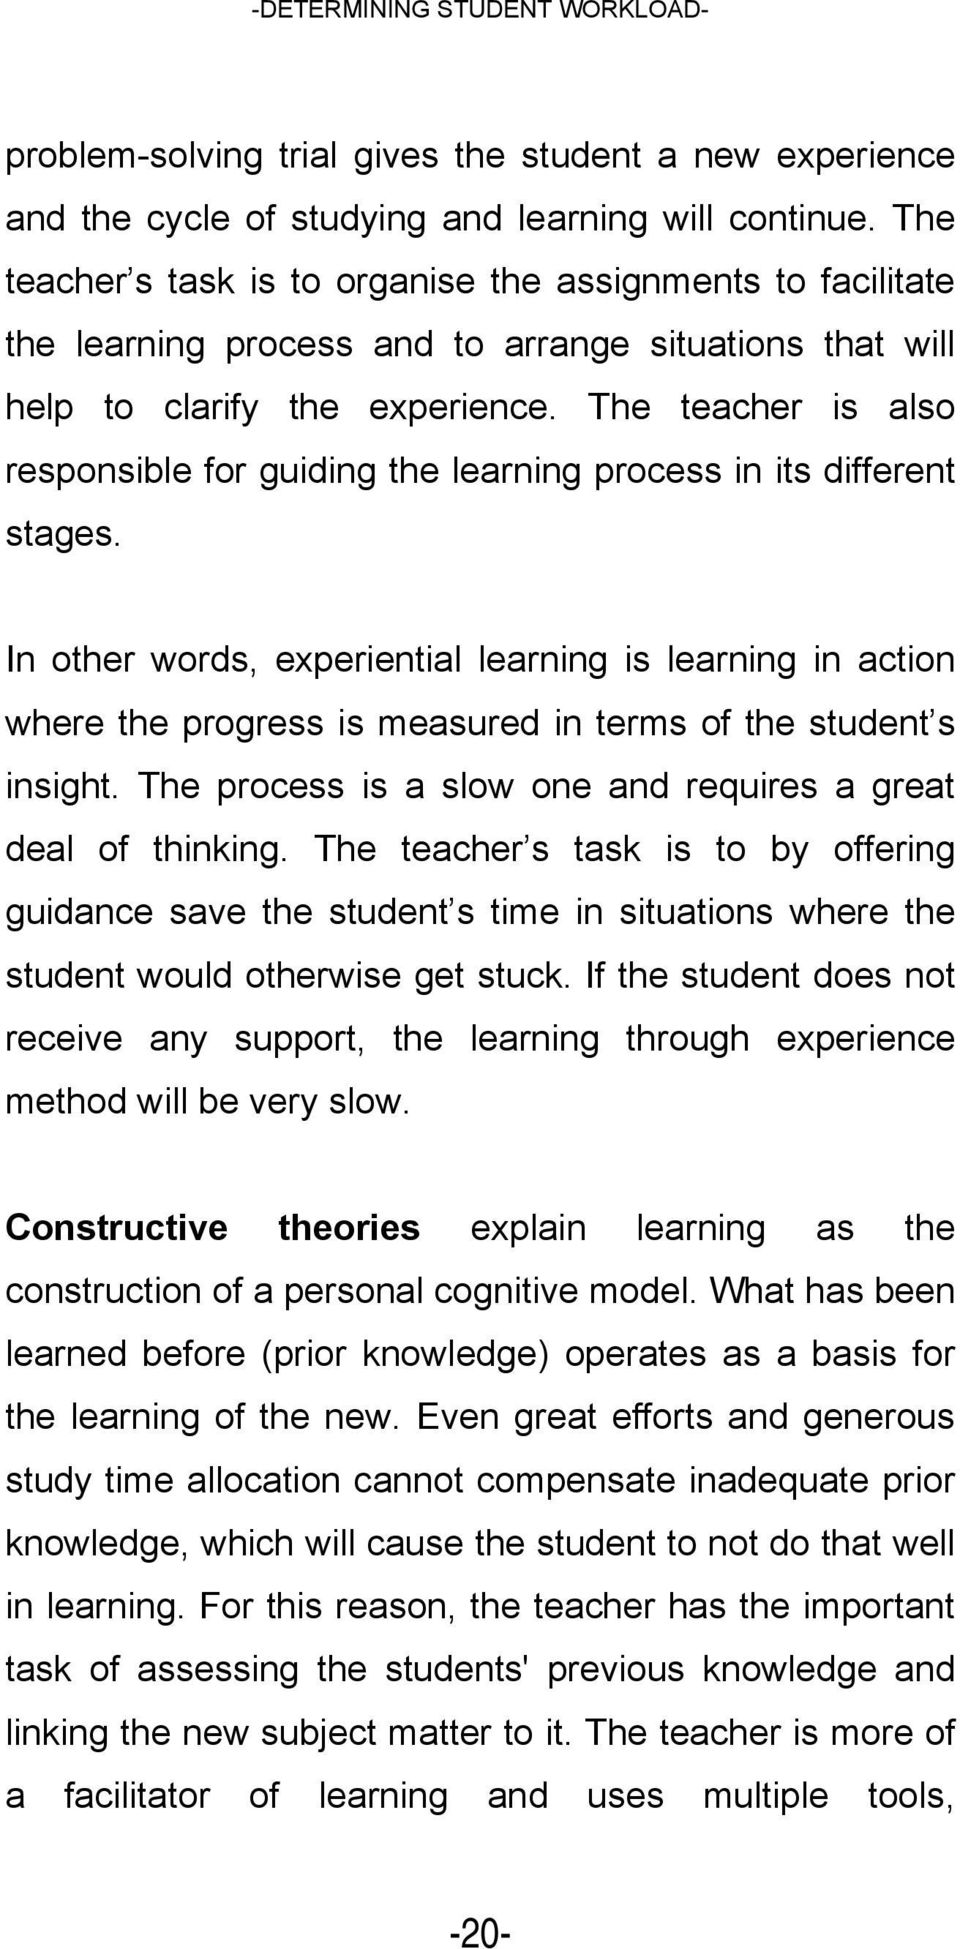 The teacher is also responsible for guiding the learning process in its different stages.